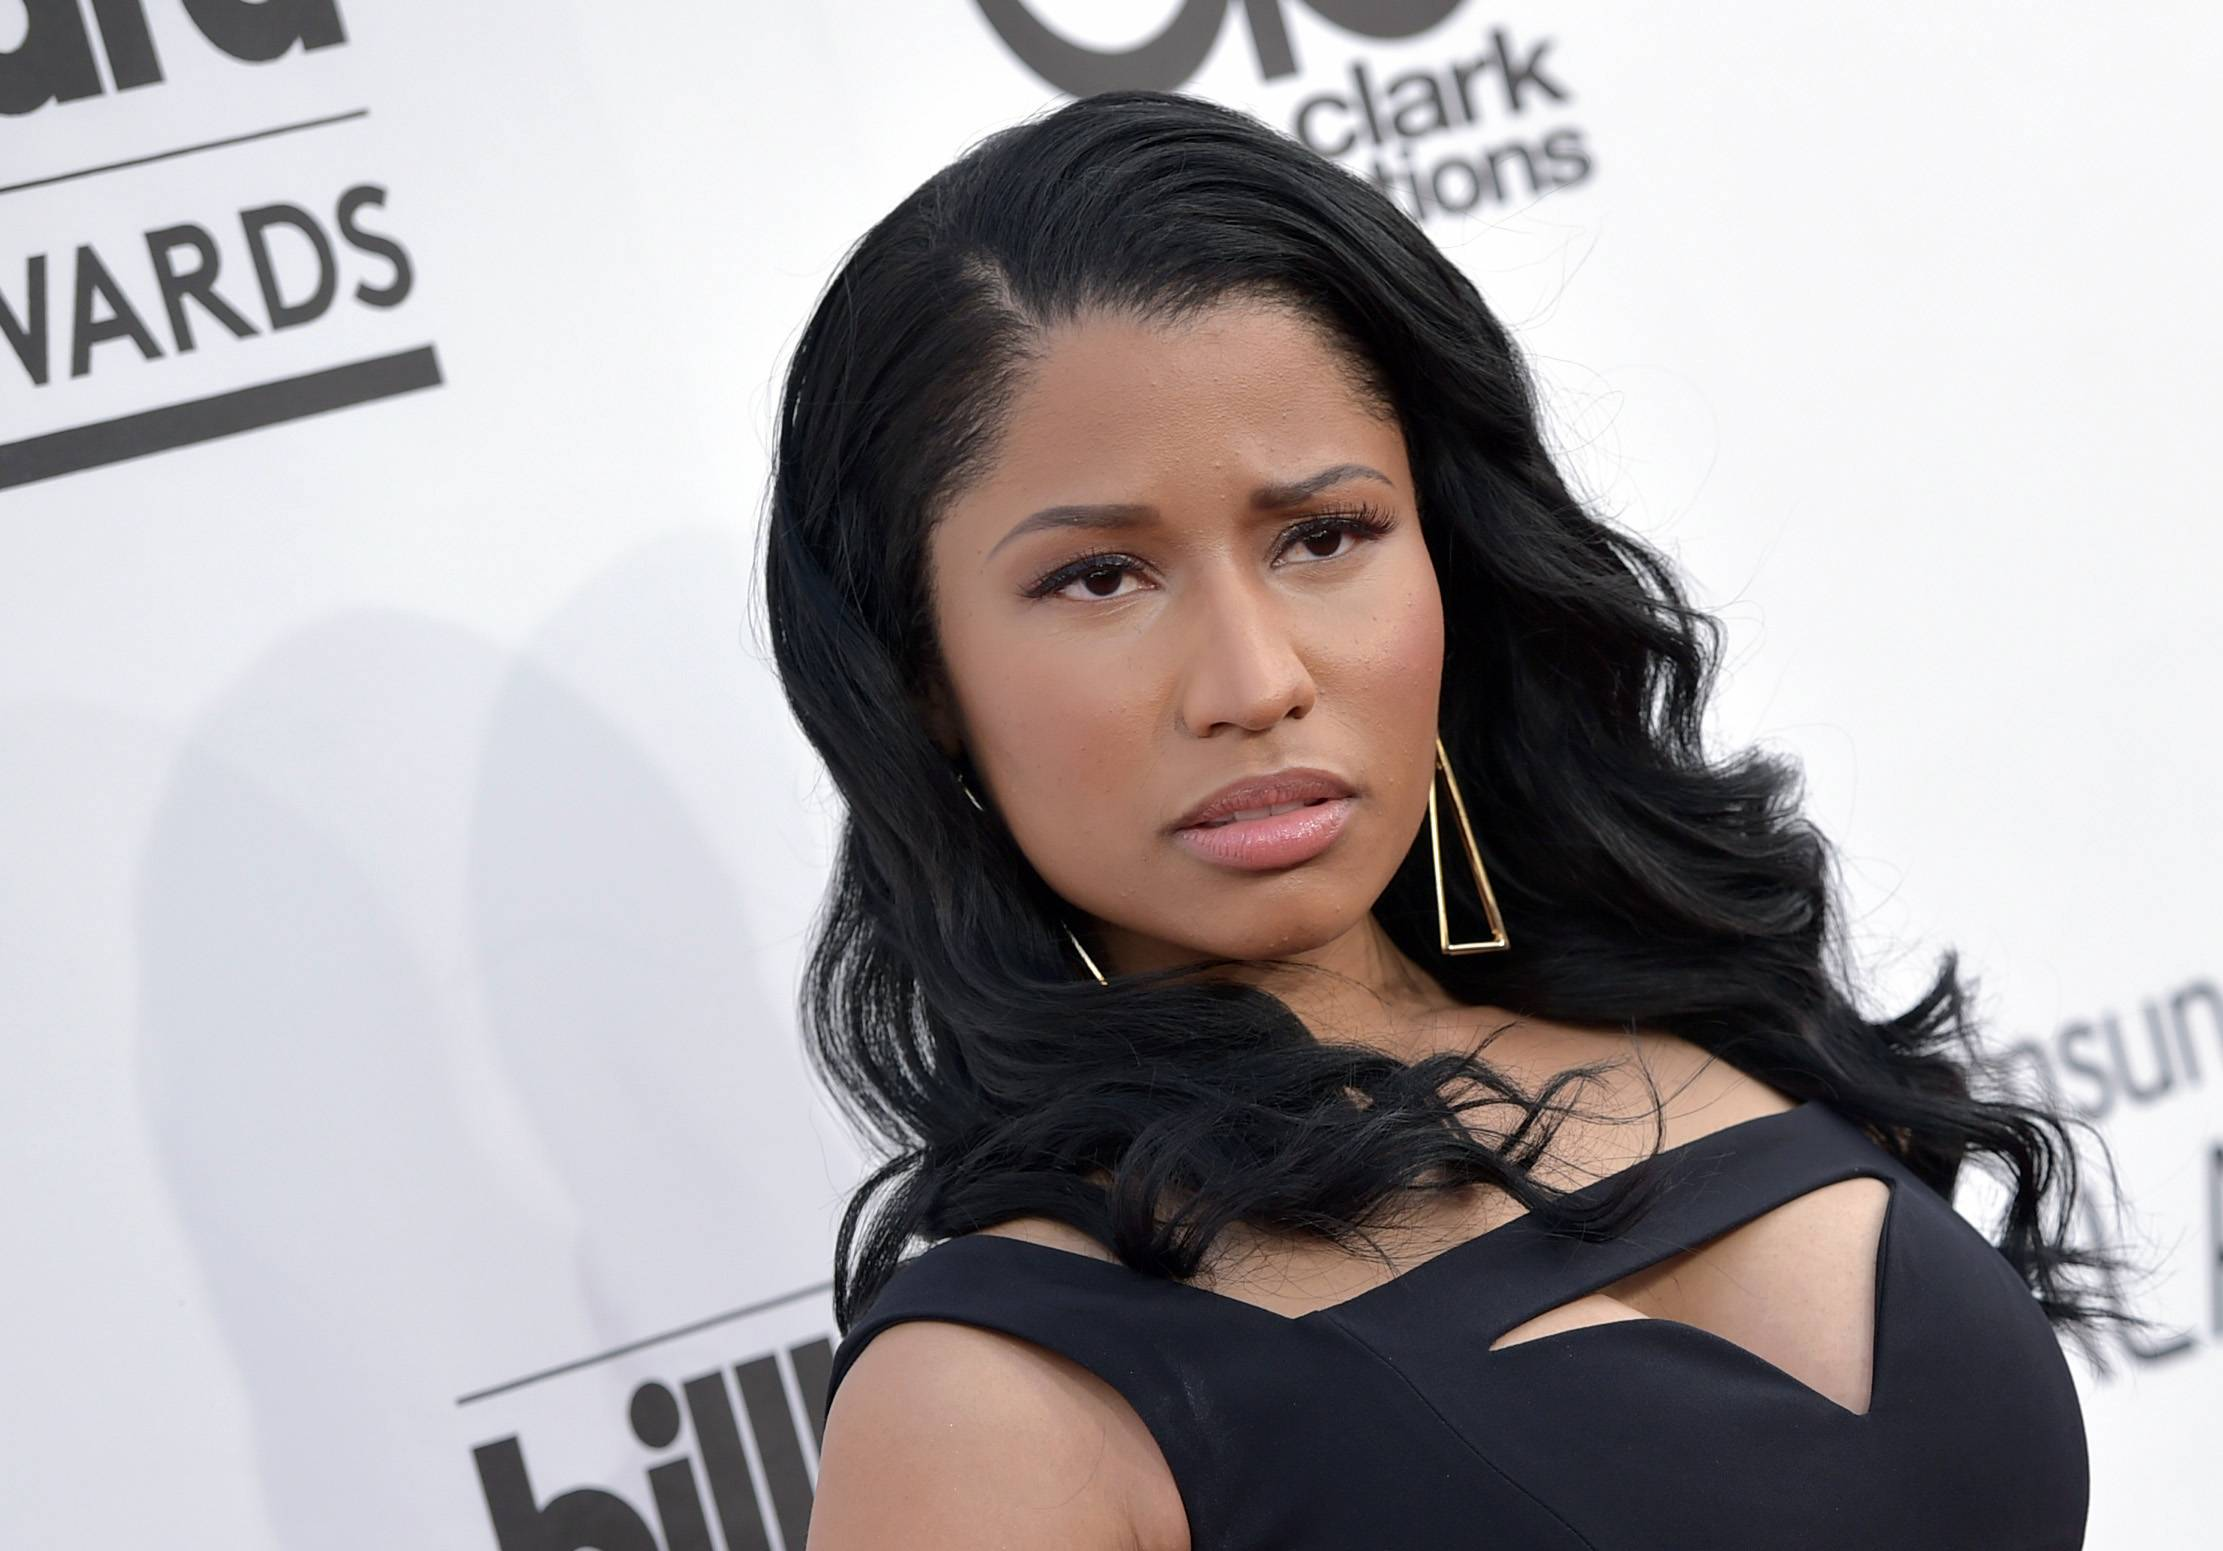 Nicki Minaj arrives at the Billboard Music Awards at the MGM Grand Garden Arena on Sunday, May 18, 2014, in Las Vegas.